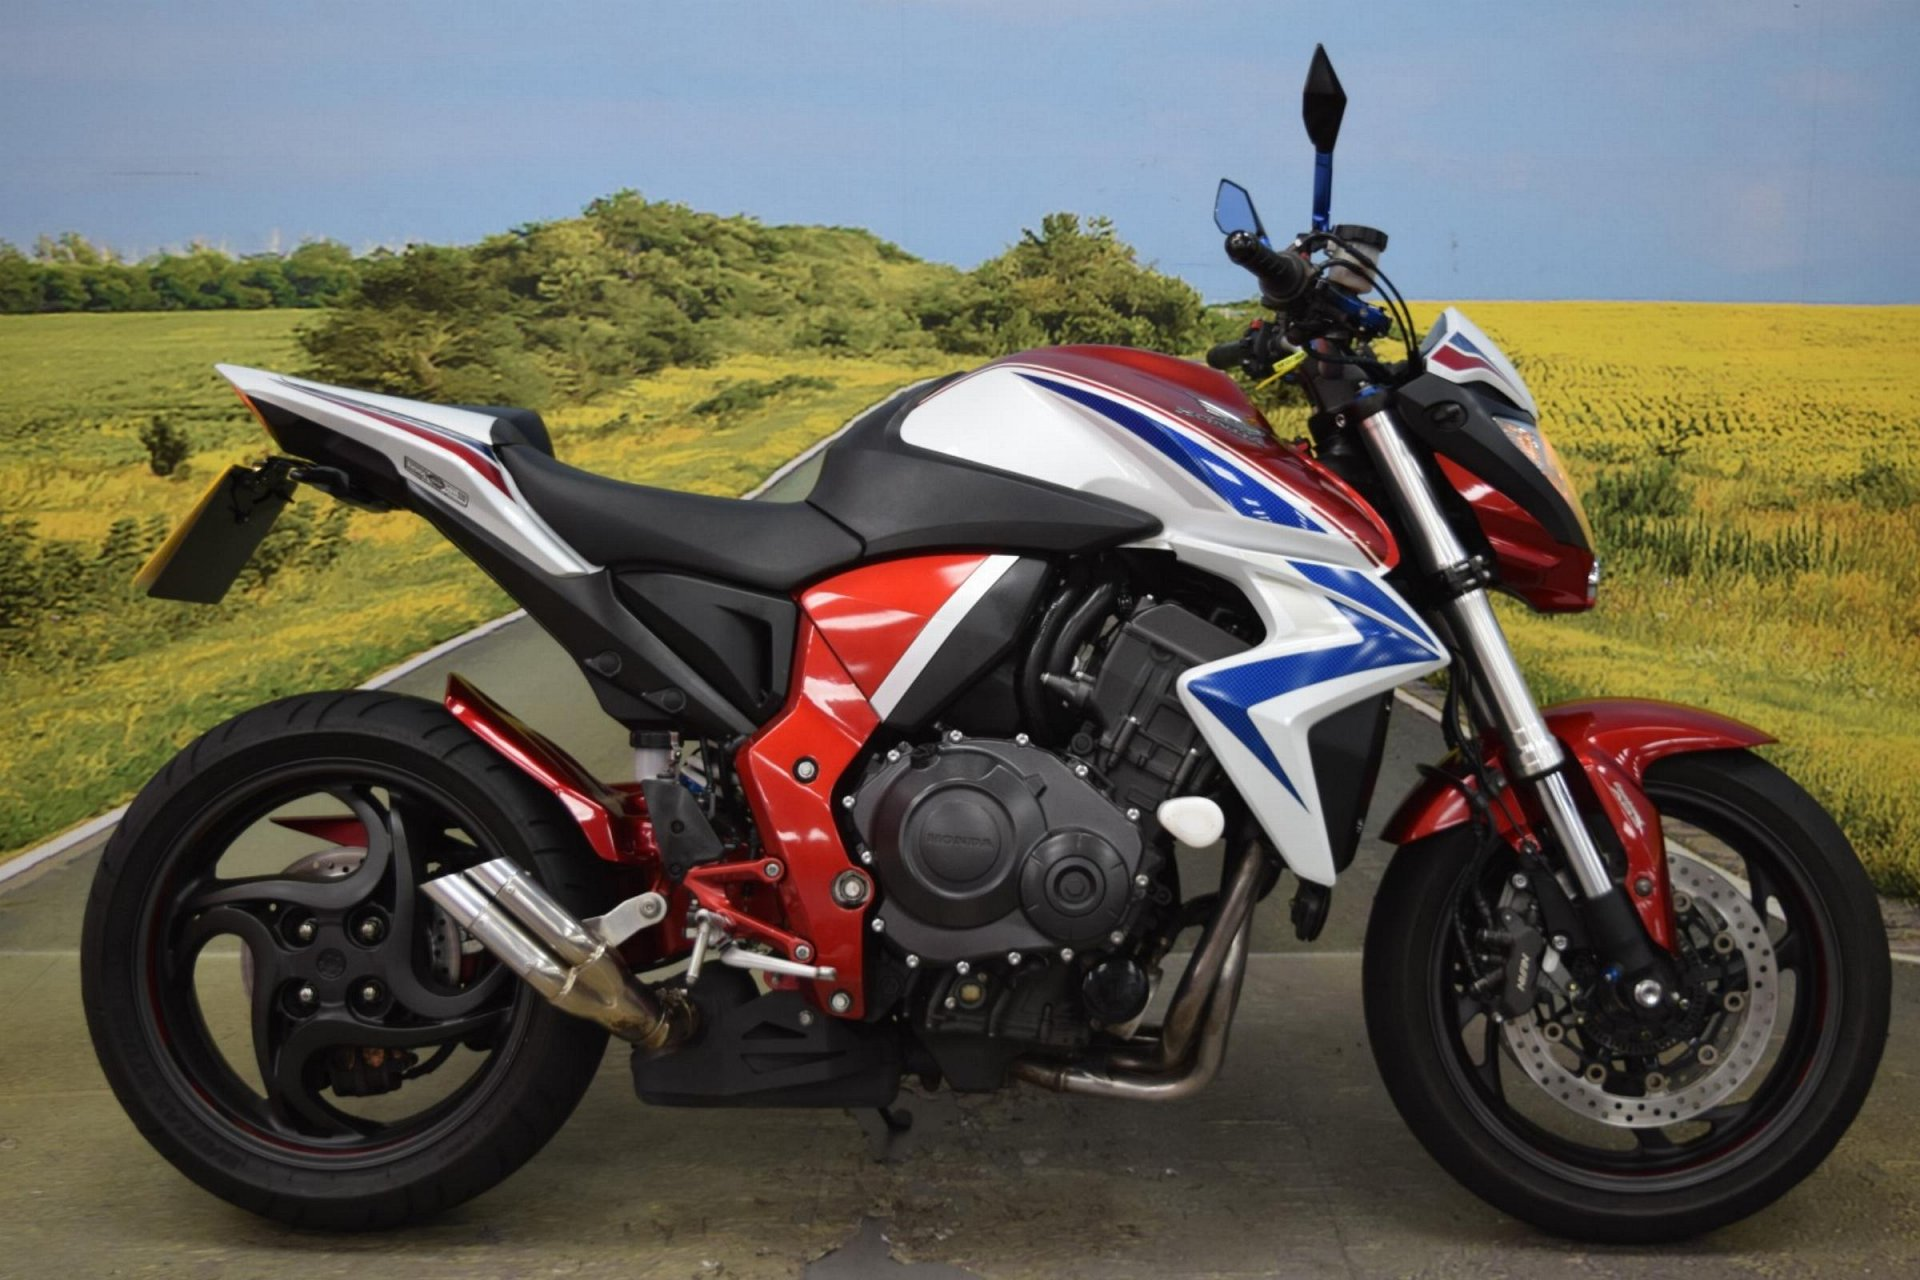 2016 Honda CB 1000 R for sale in Staffordshire